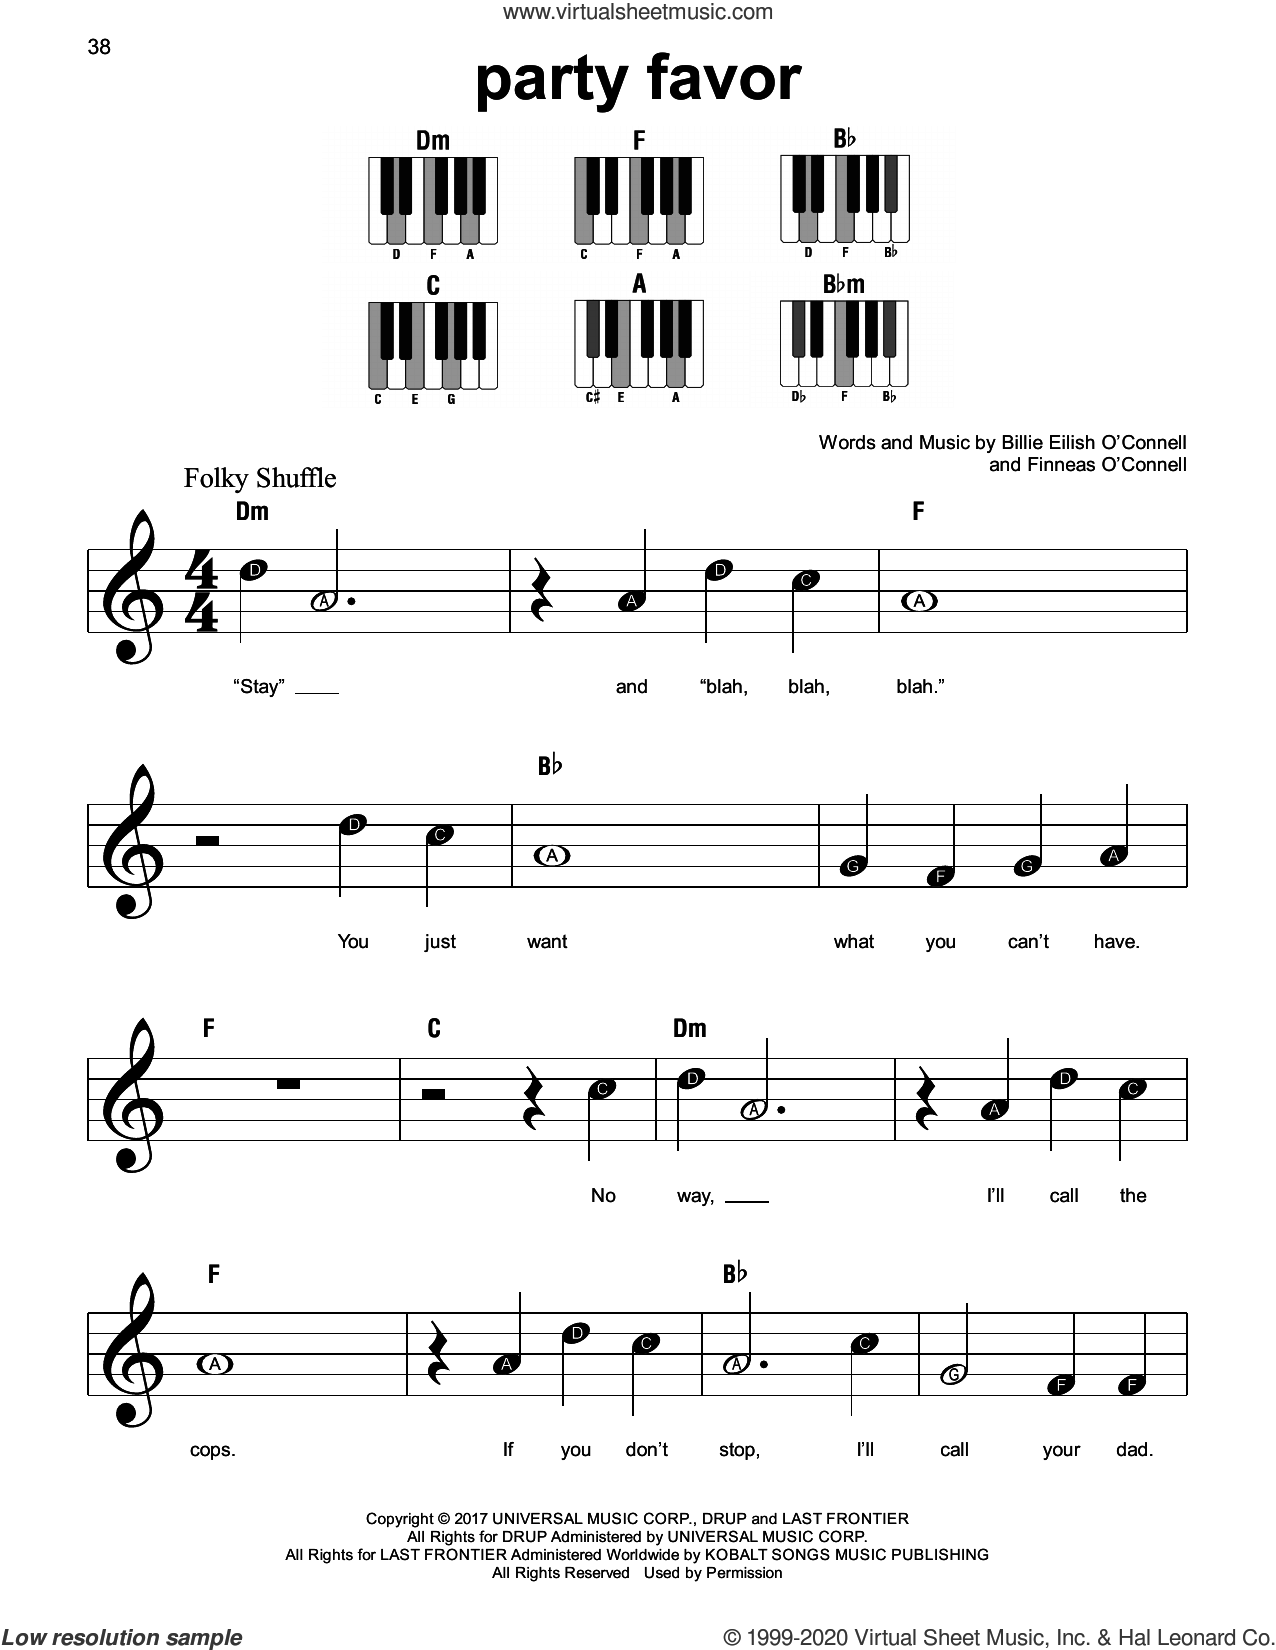 party favor sheet music for piano solo by Billie Eilish, beginner skill level